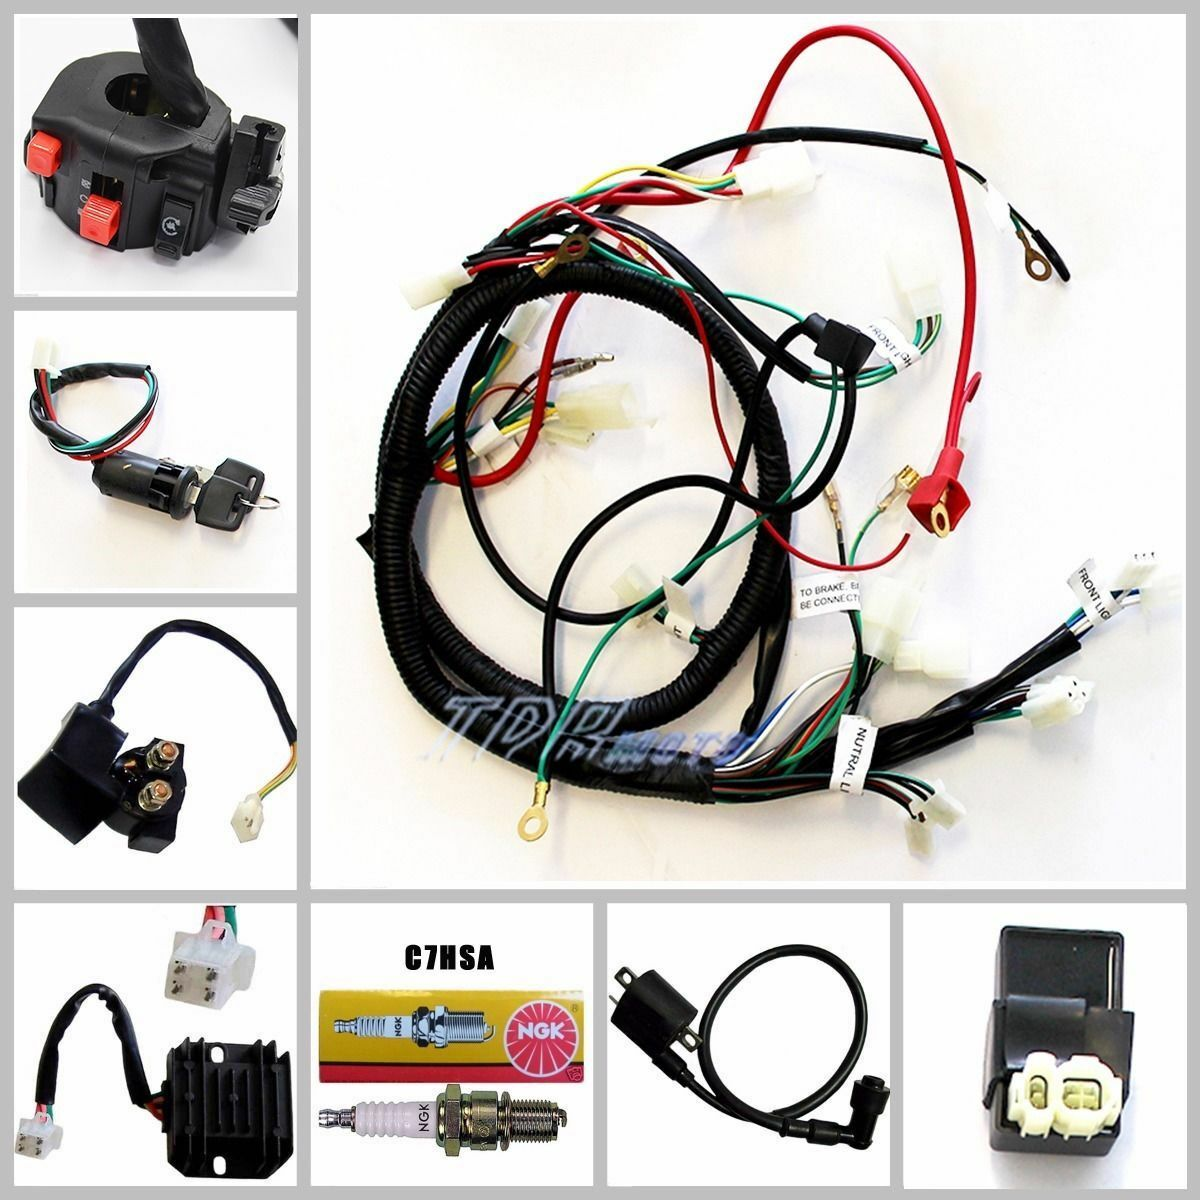 go kart gy6 wiring harness buggy wiring harness loom gy6 150cc chinese electric start kandi  buggy wiring harness loom gy6 150cc